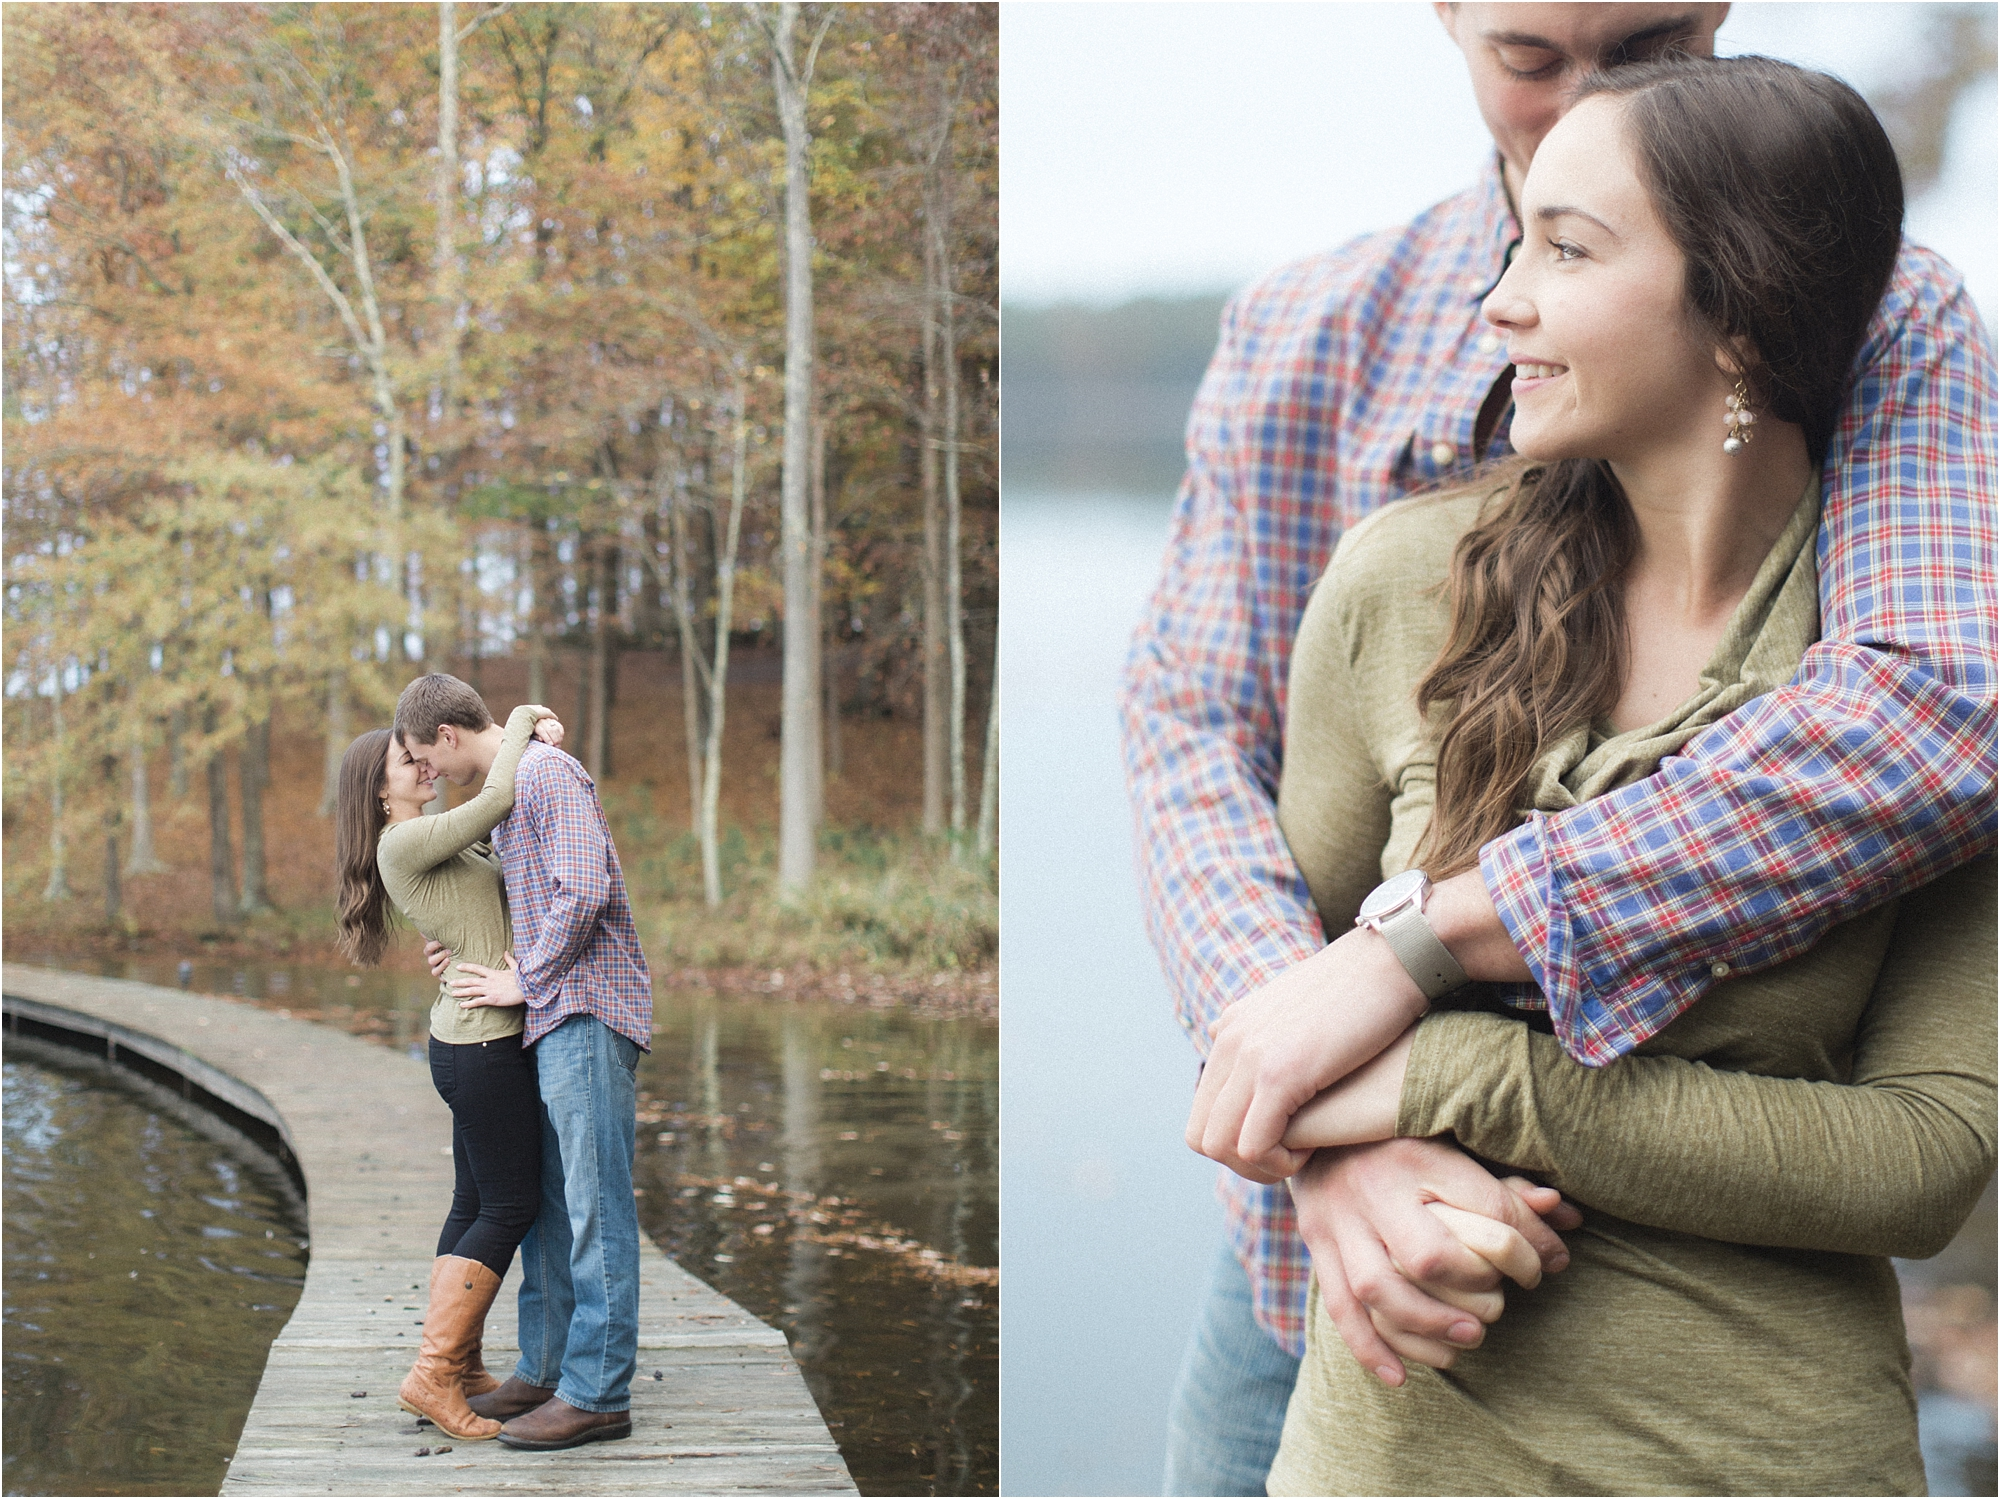 stephanie-yonce-photography-richmond-virginia-woodsey-fall-engagement-session-photos_0015.jpg